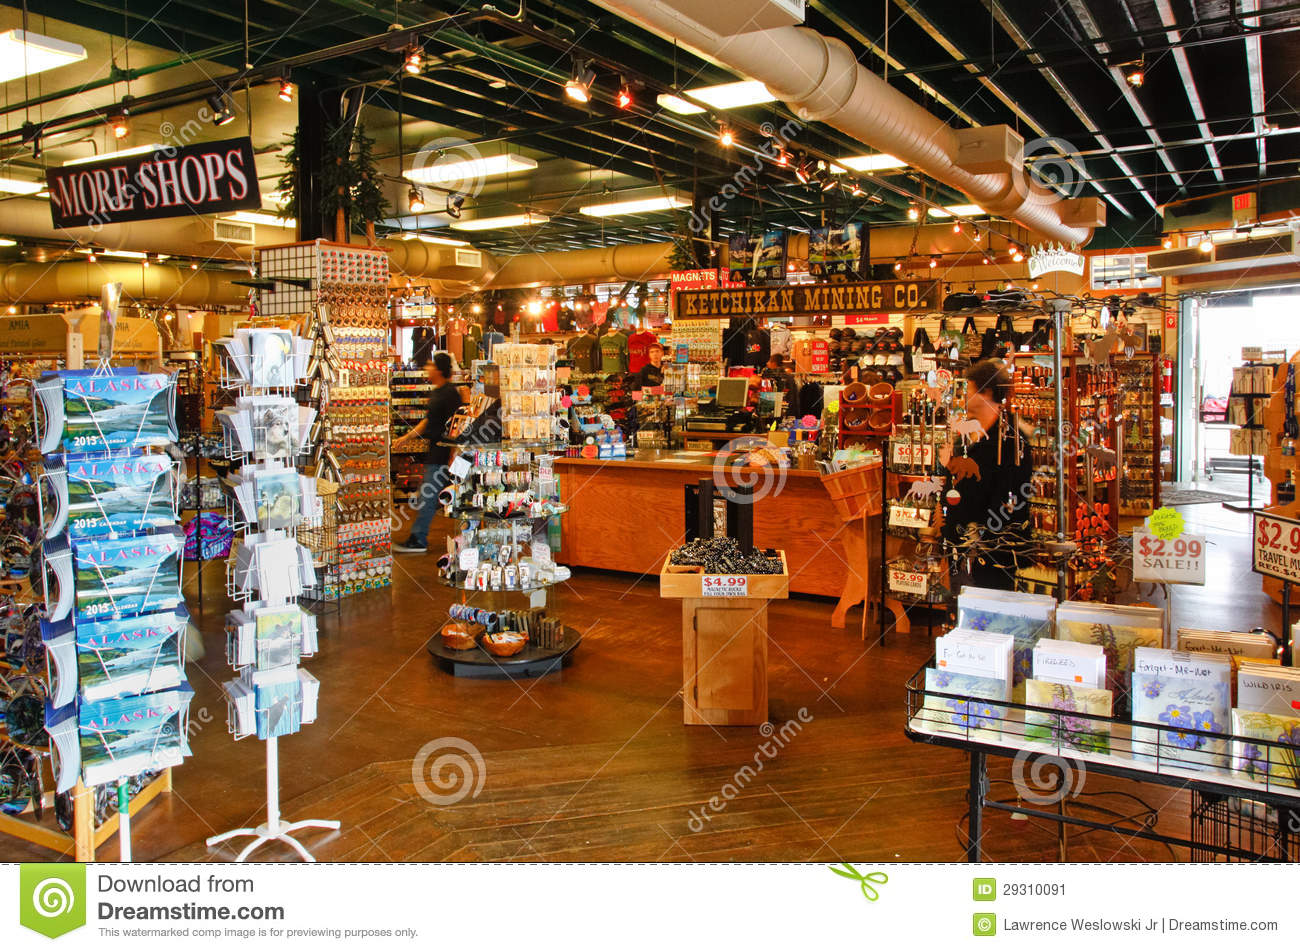 Alaska Ketchikan Mining Company Shop Interior Editorial Photo     A view of the interior of the Ketchikan Mining Company gift shop store  A  popular summer cruise ship port of call  Ketchikan is located at the start  of the